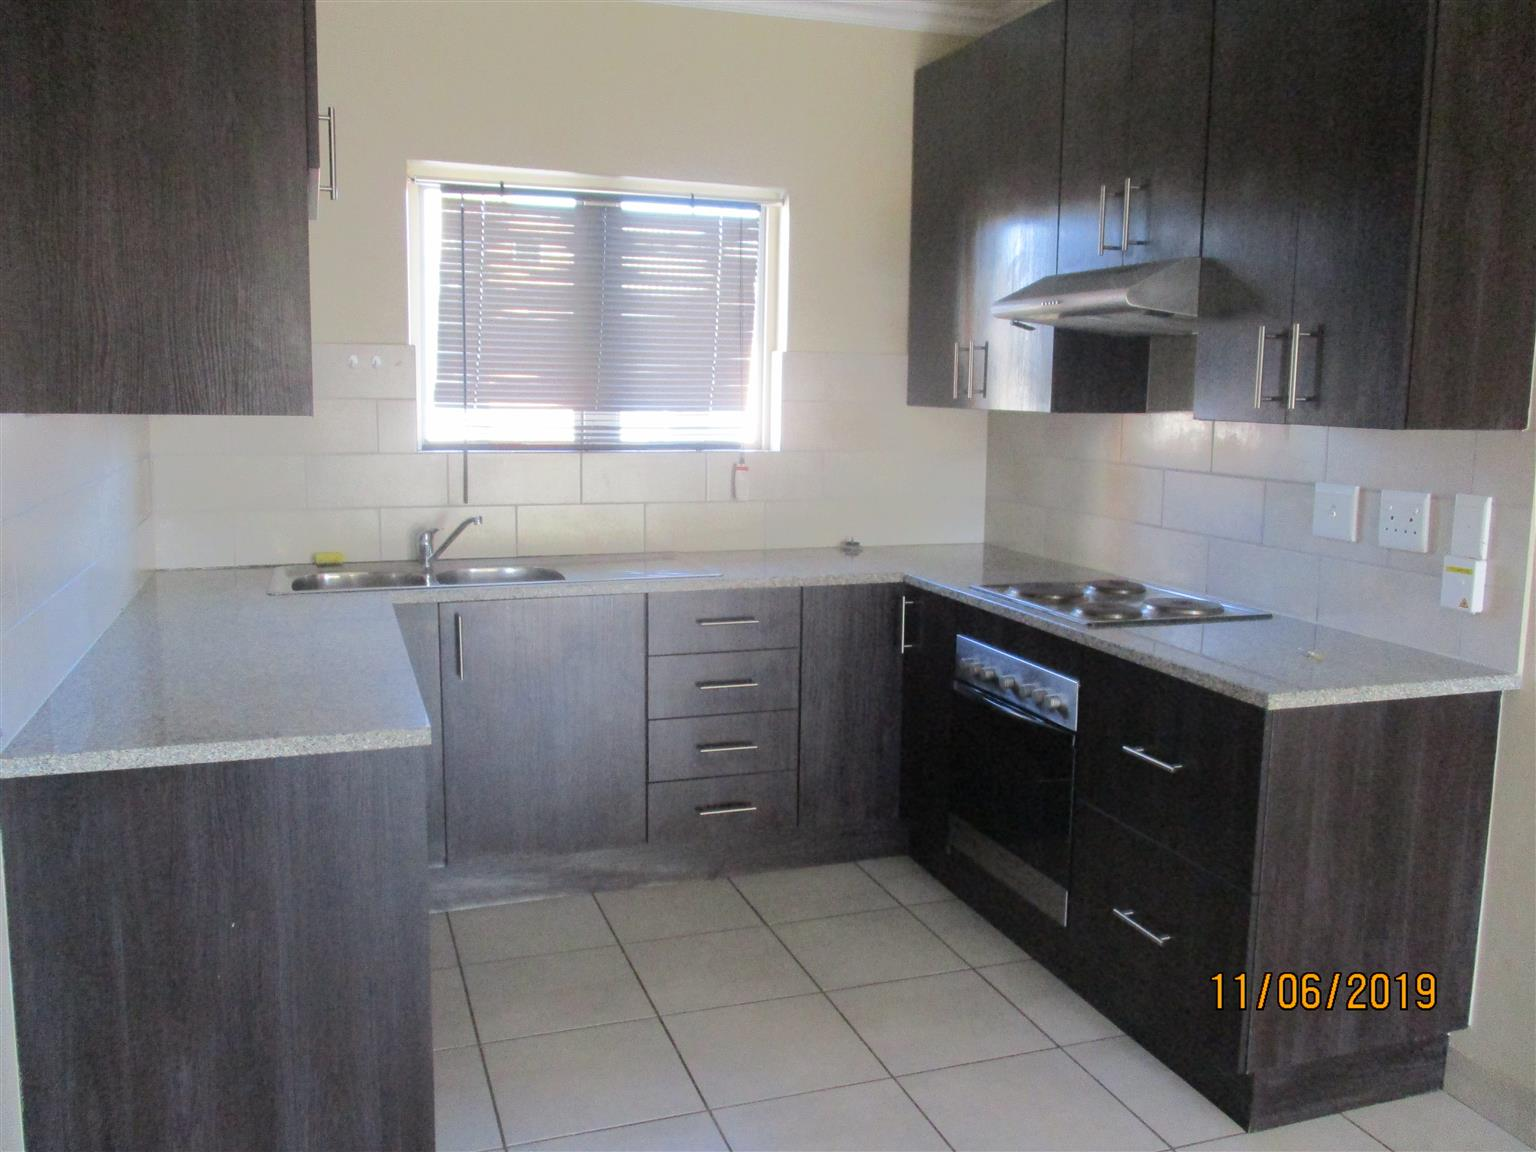 3 Bedroom 2 Bathroom Apartment For Rent Noordwyk Junk Mail